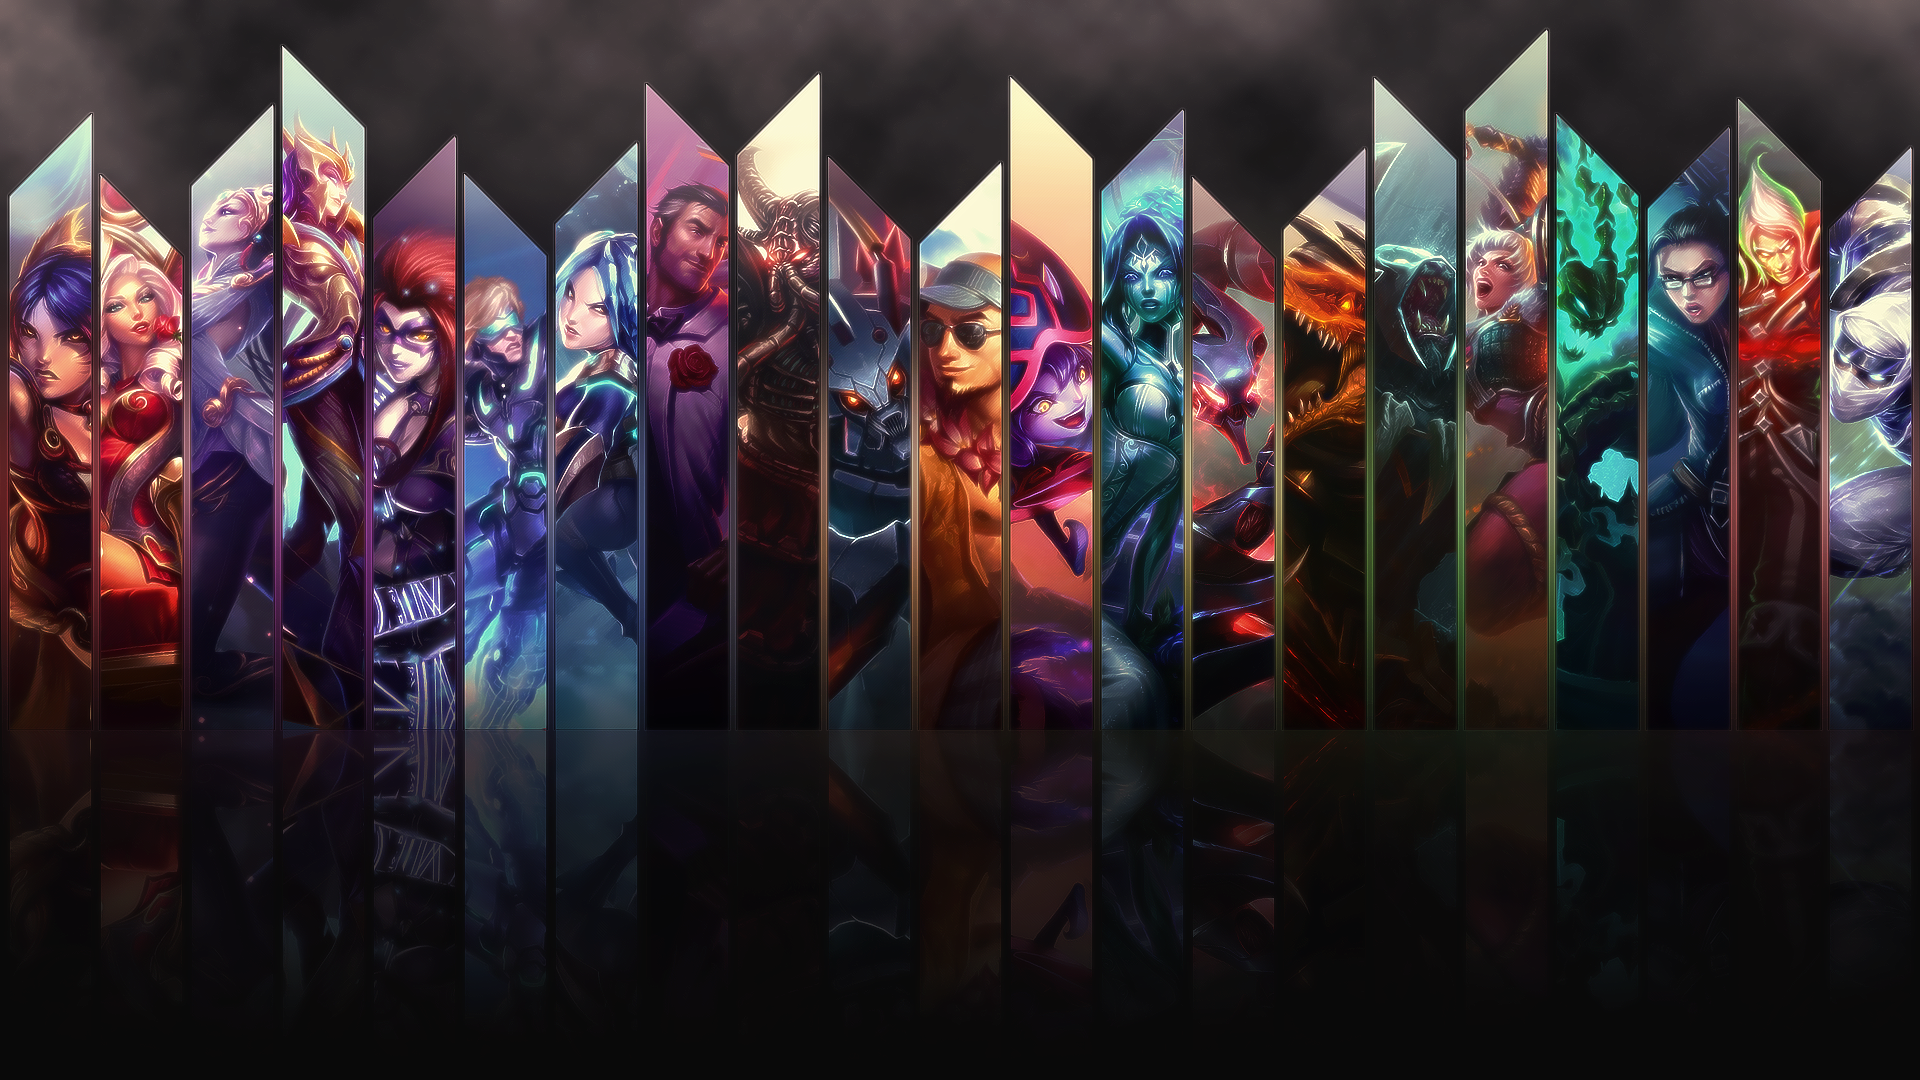 Free Download League Of Legends Wallpaperpanel Art By Wishlah